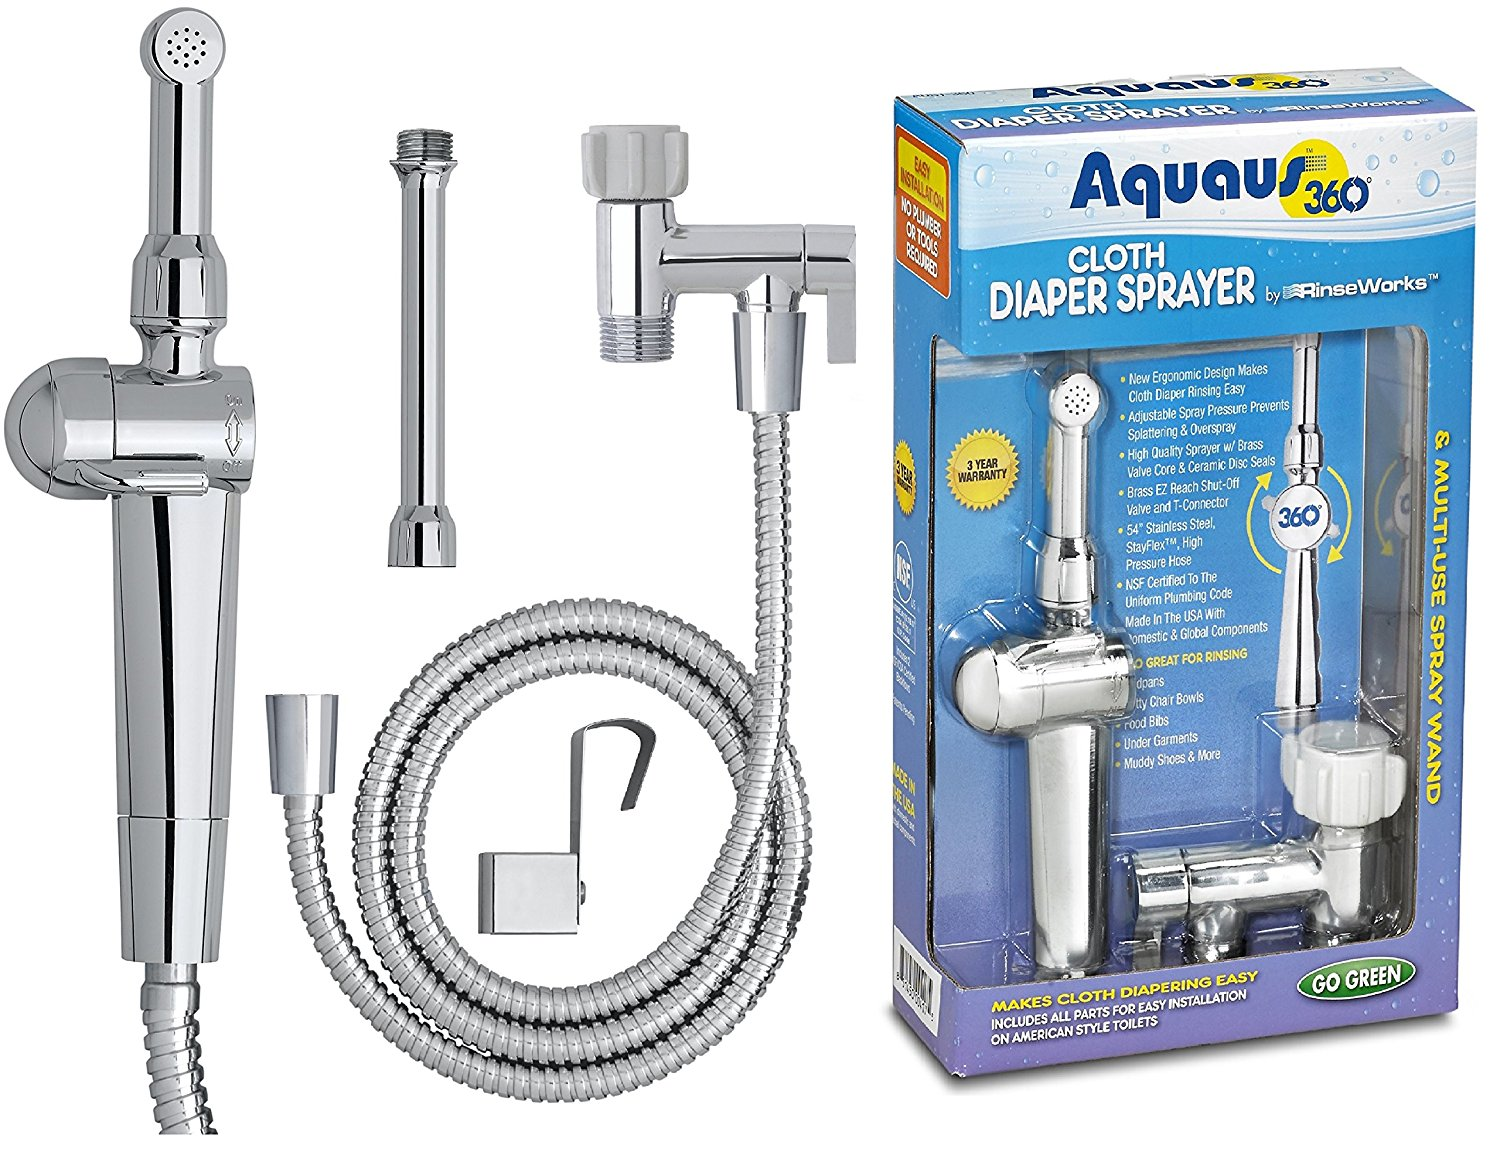 RinseWorks Aquaus 360 Diaper Sprayer For Toilet with Dual Thumb Pressure Controls and Ceramic Disk Seals